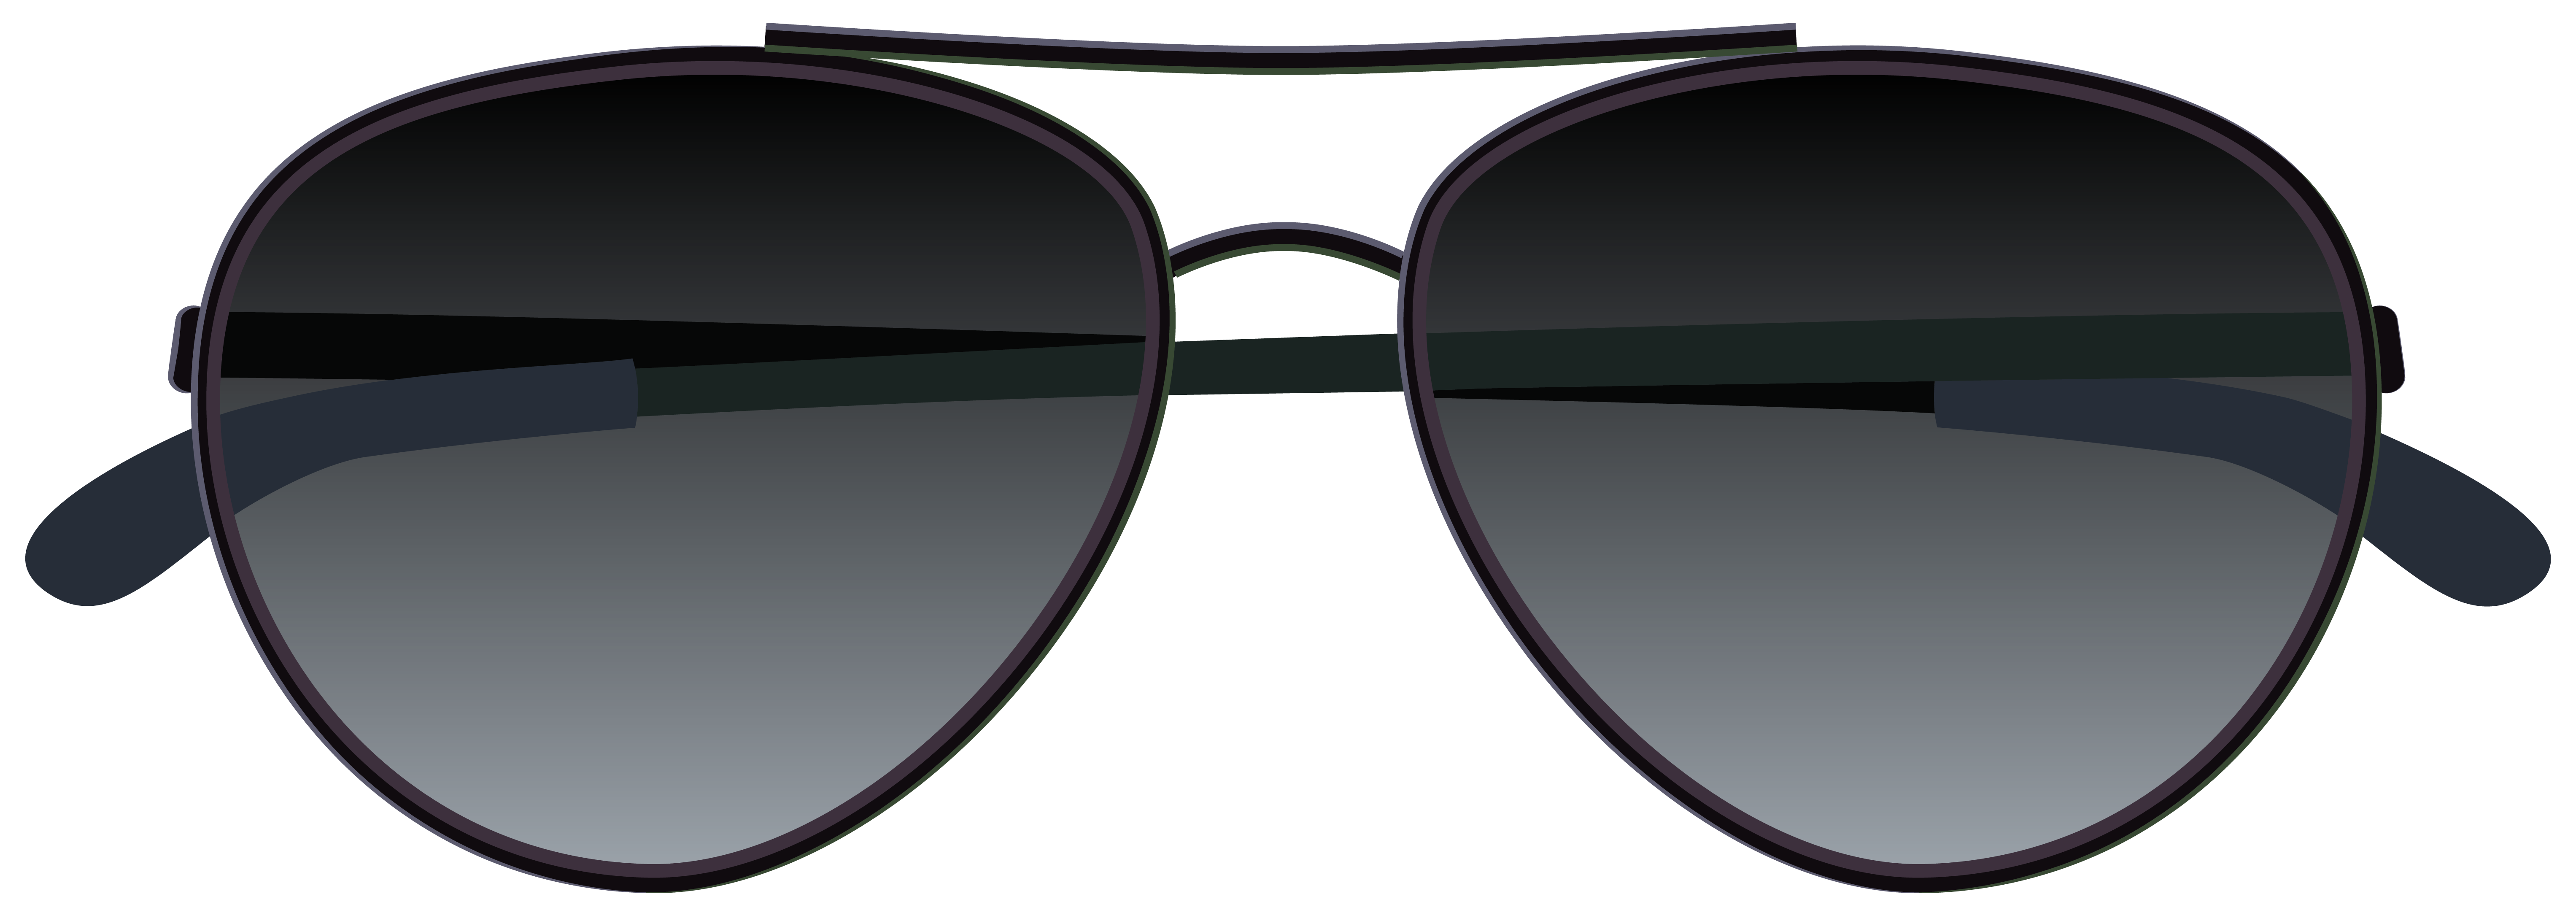 Sunglasses Transparent Background PNG Image